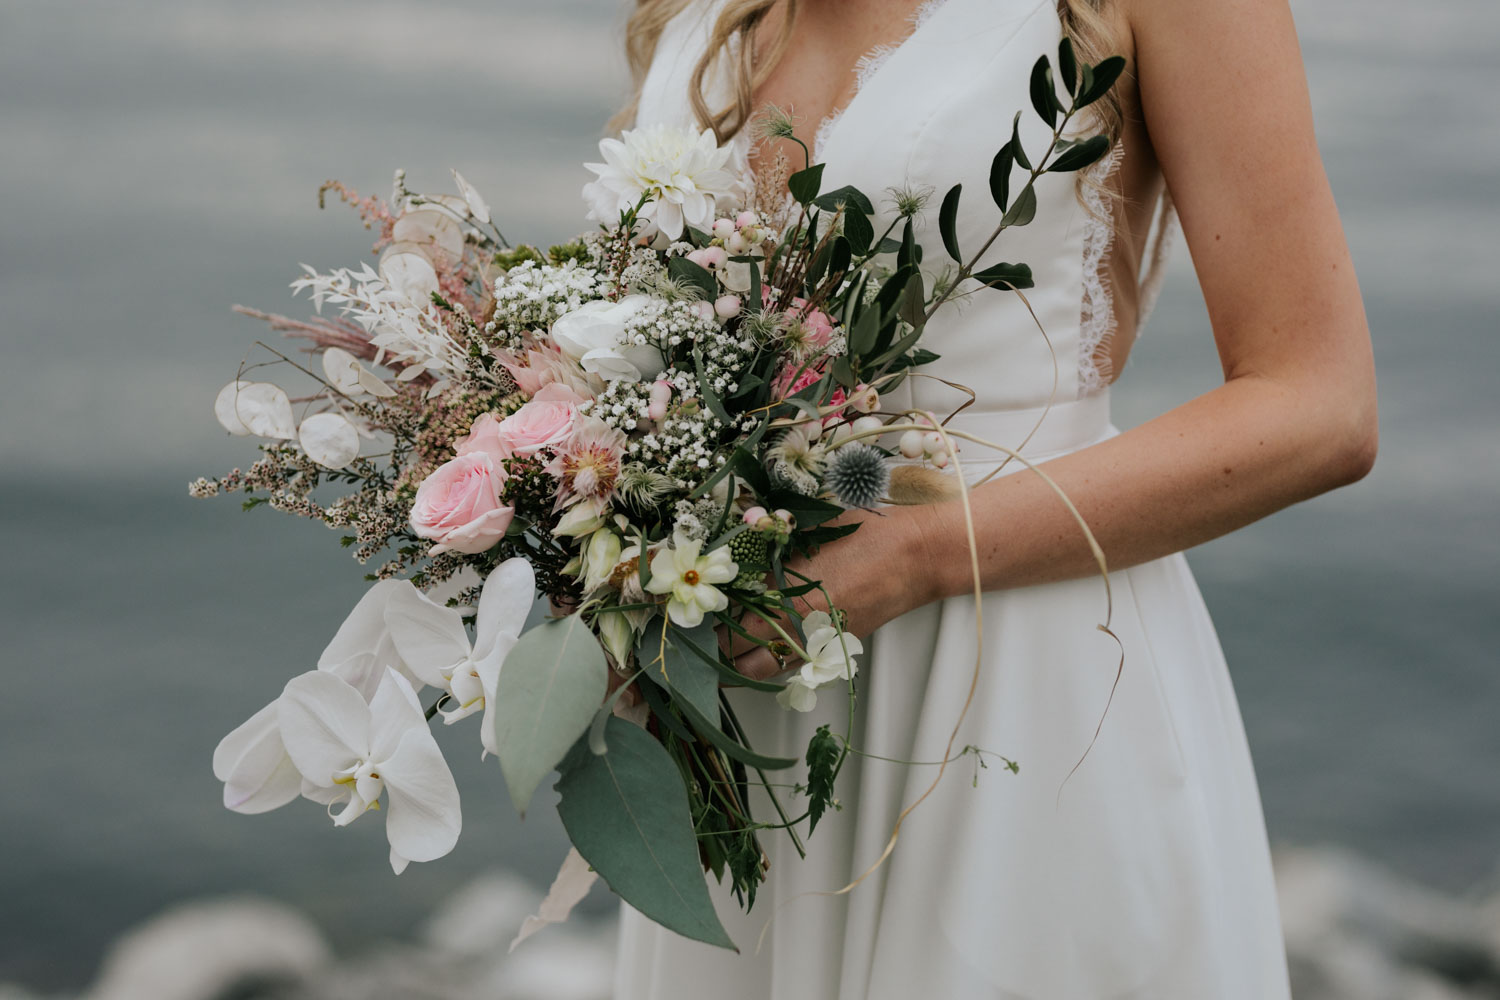 Wedding bouquet by The Wild Bunch, best alternative Vancouver wedding florist